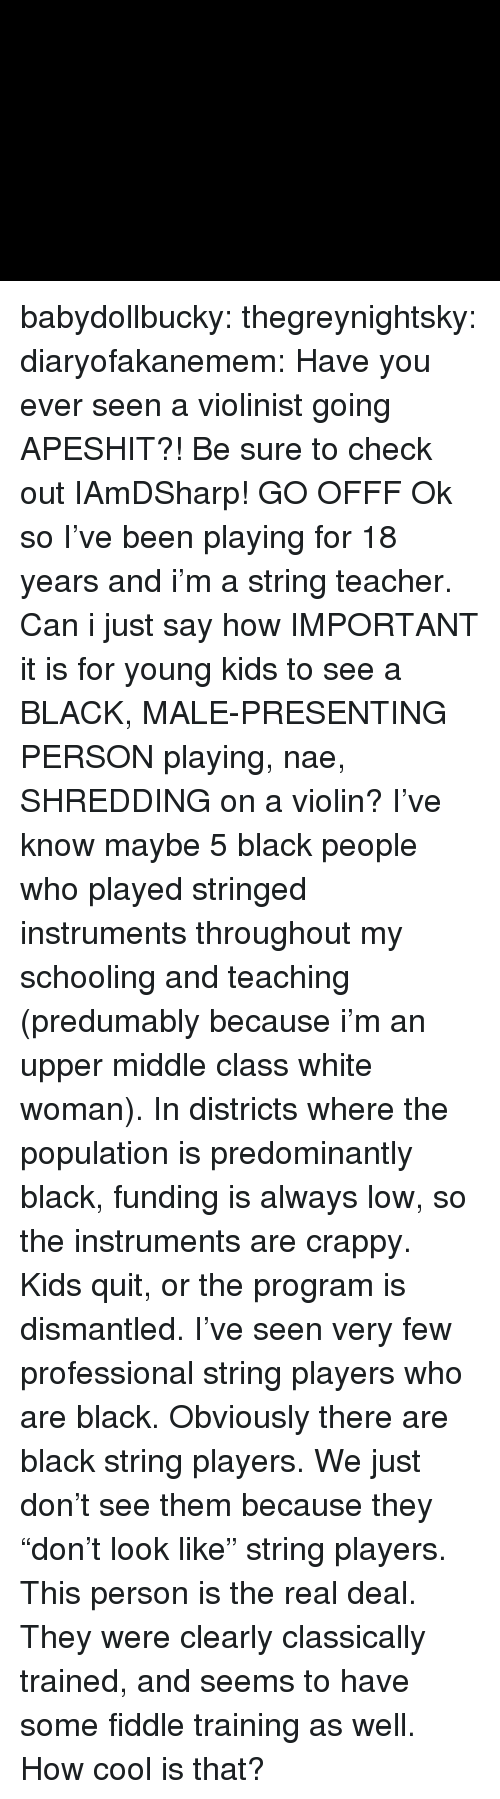 """violin: babydollbucky:  thegreynightsky:  diaryofakanemem:   Have you ever seen a violinist going APESHIT?! Be sure to check outIAmDSharp!   GO OFFF  Ok so I've been playing for 18 years and i'm a string teacher. Can i just say how IMPORTANT it is for young kids to see a BLACK, MALE-PRESENTING PERSON playing, nae, SHREDDING on a violin? I've know maybe 5 black people who played stringed instruments throughout my schooling and teaching (predumably because i'm an upper middle class white woman). In districts where the population is predominantly black, funding is always low, so the instruments are crappy. Kids quit, or the program is dismantled. I've seen very few professional string players who are black.  Obviously there are black string players. We just don't see them because they """"don't look like"""" string players.   This person is the real deal. They were clearly classically trained, and seems to have some fiddle training as well. How cool is that?"""